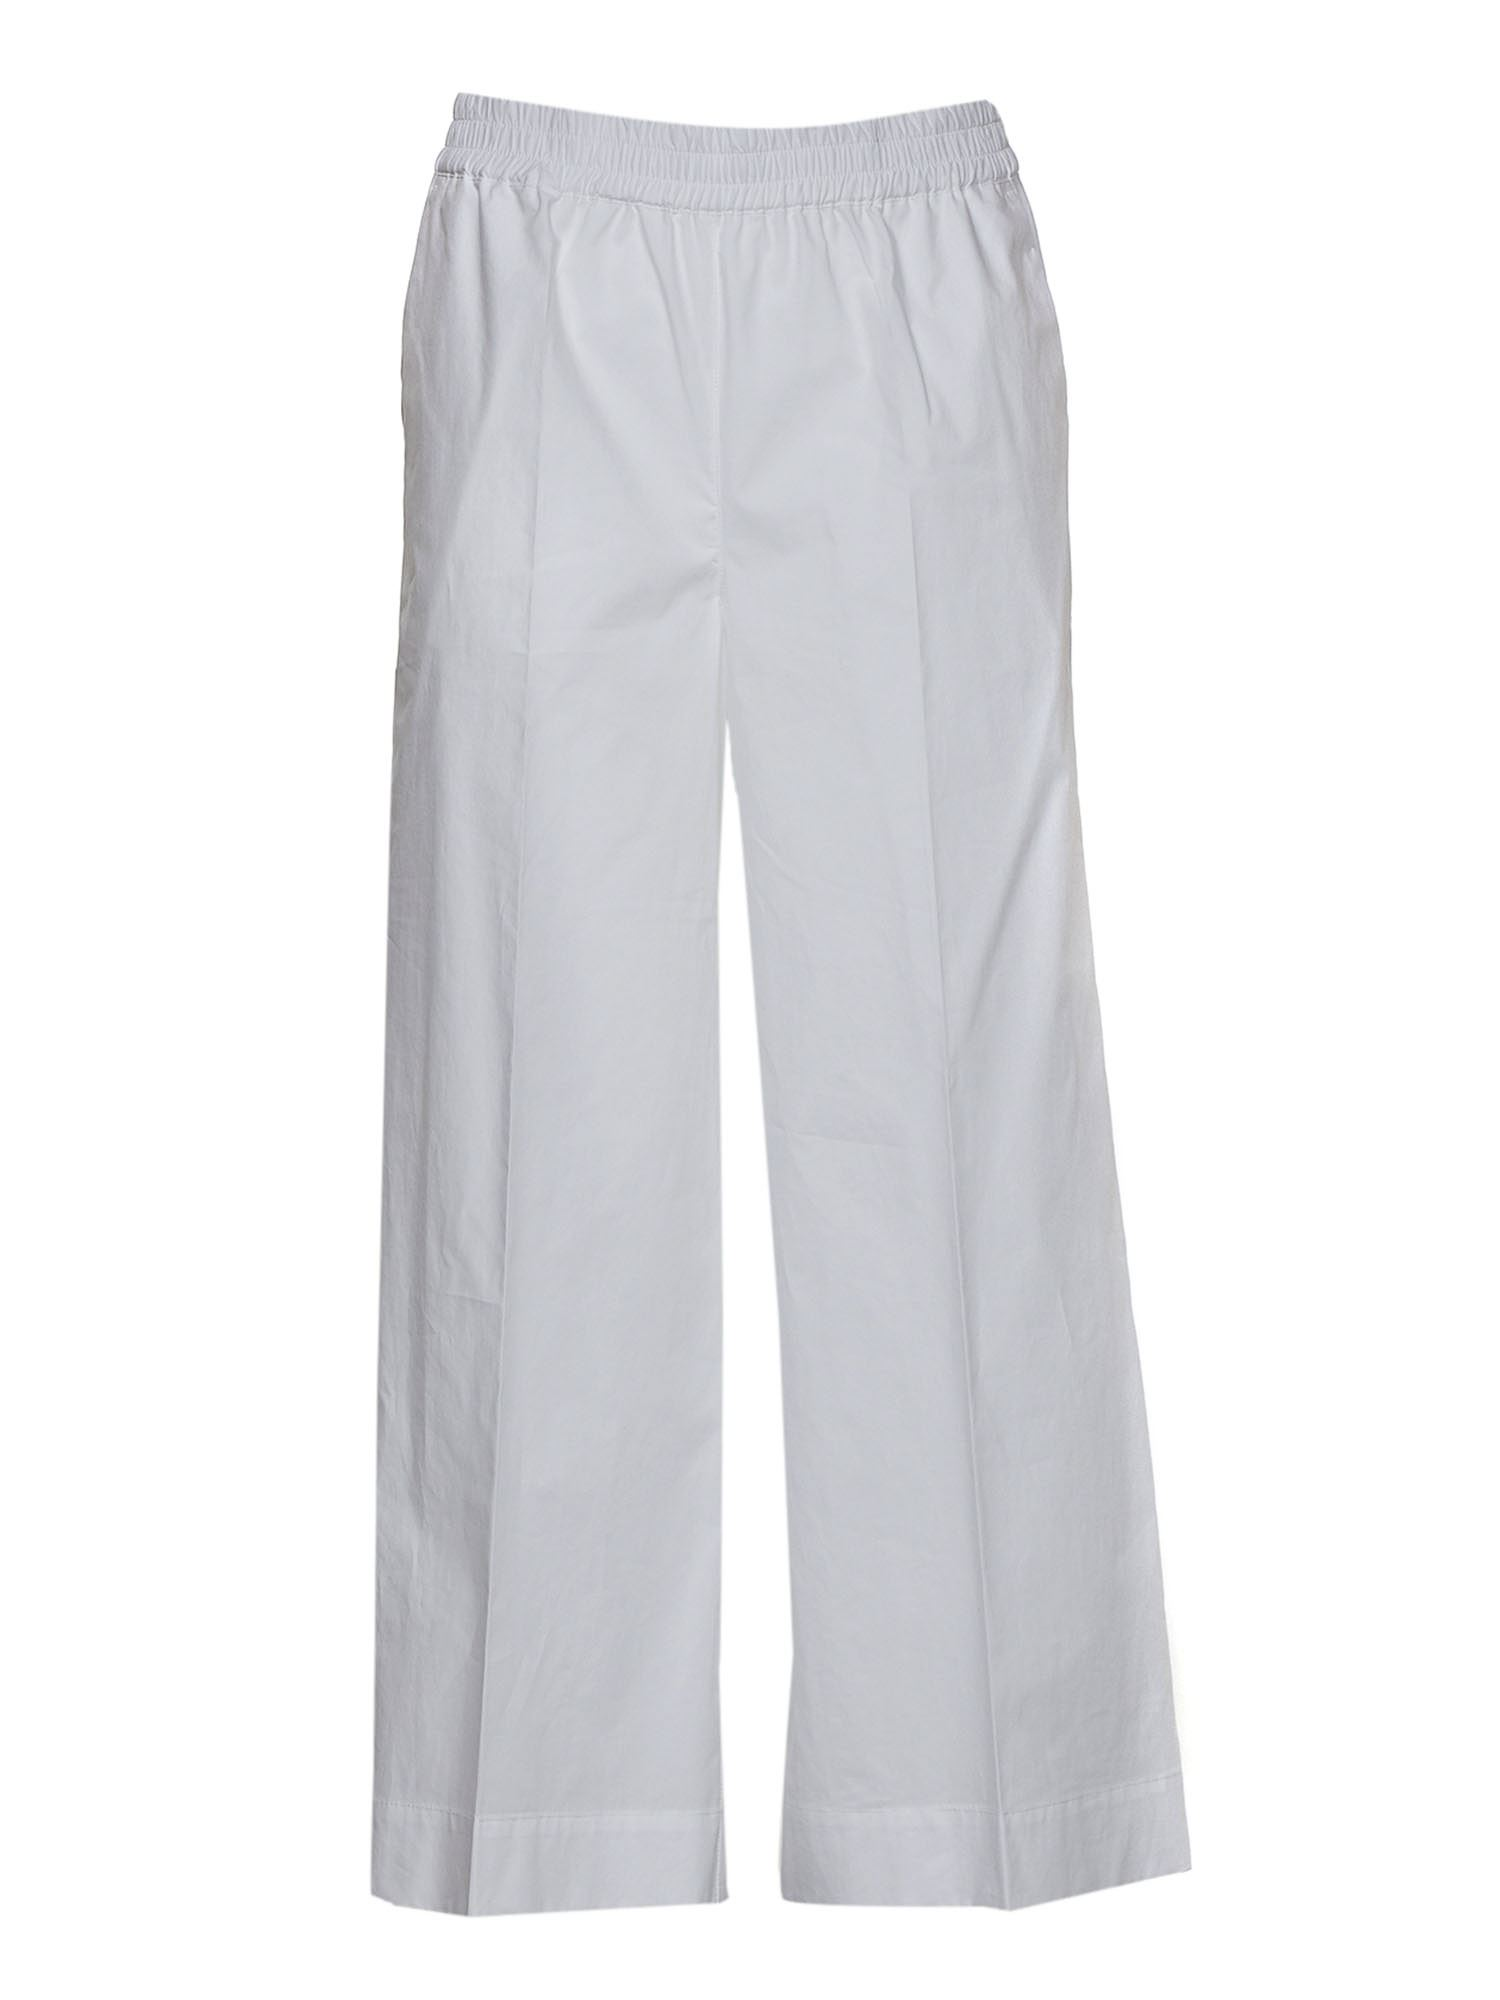 P.a.r.o.s.h. CROP TROUSERS IN WHITE